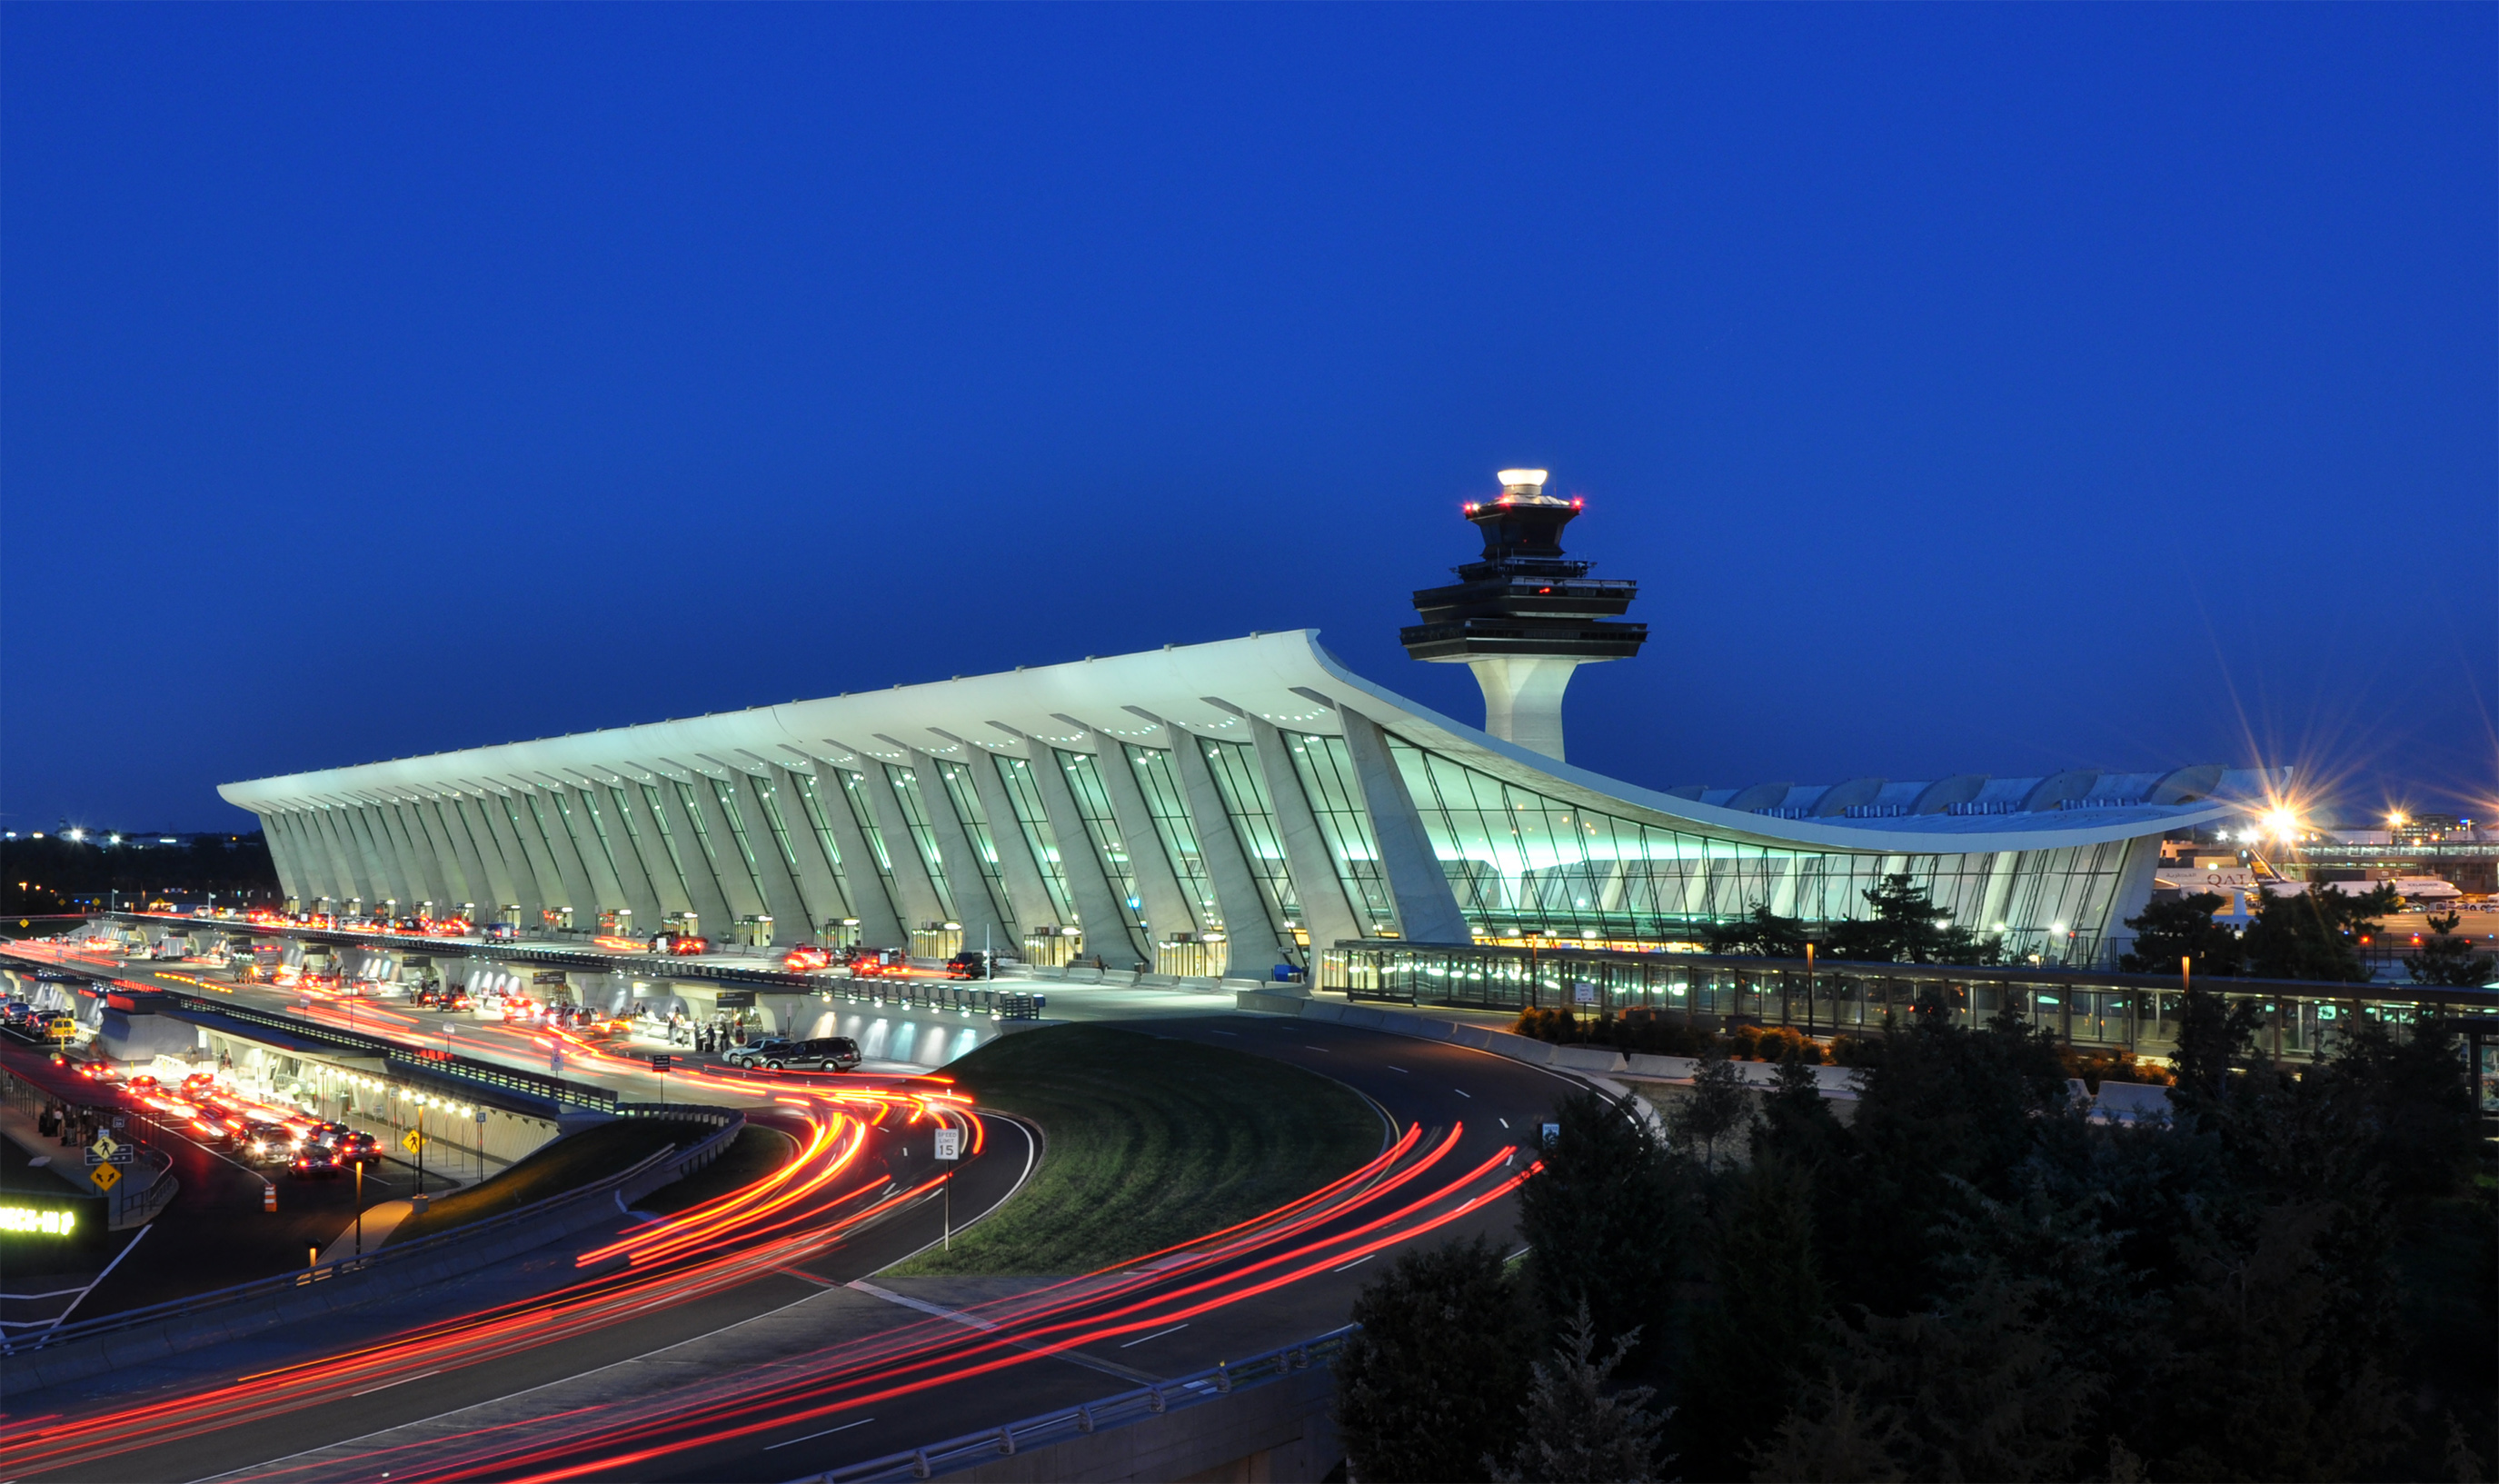 Washington Dulles International Airport(IAD)